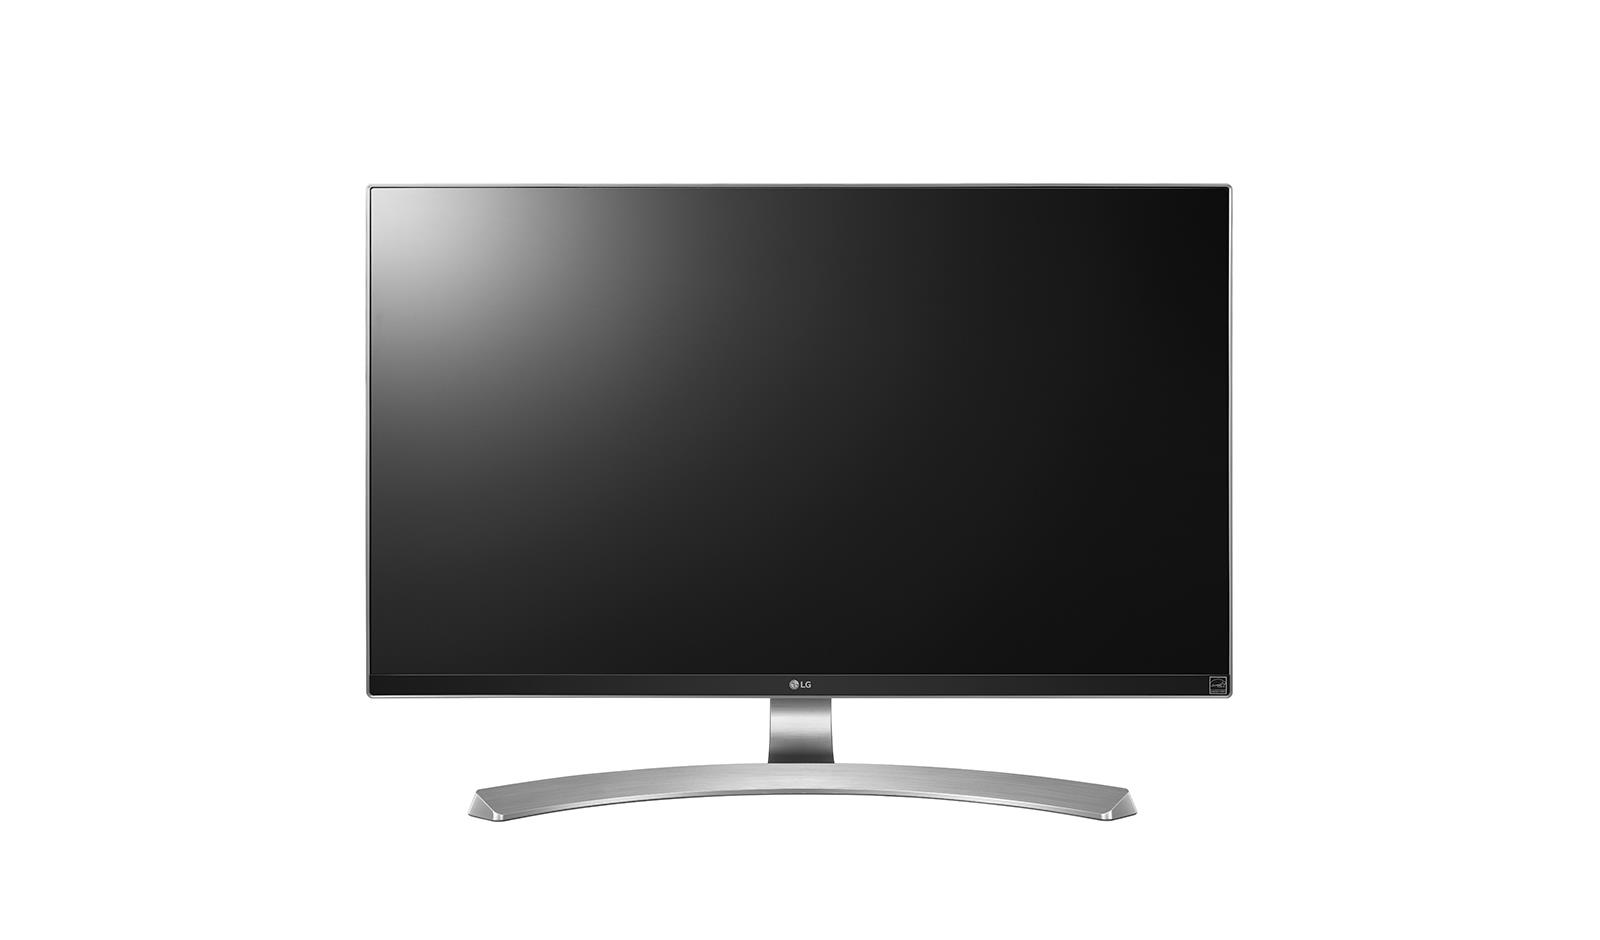 promo lg 27 39 4k uhd monitor freesy end 6 1 2019 9 15 pm. Black Bedroom Furniture Sets. Home Design Ideas